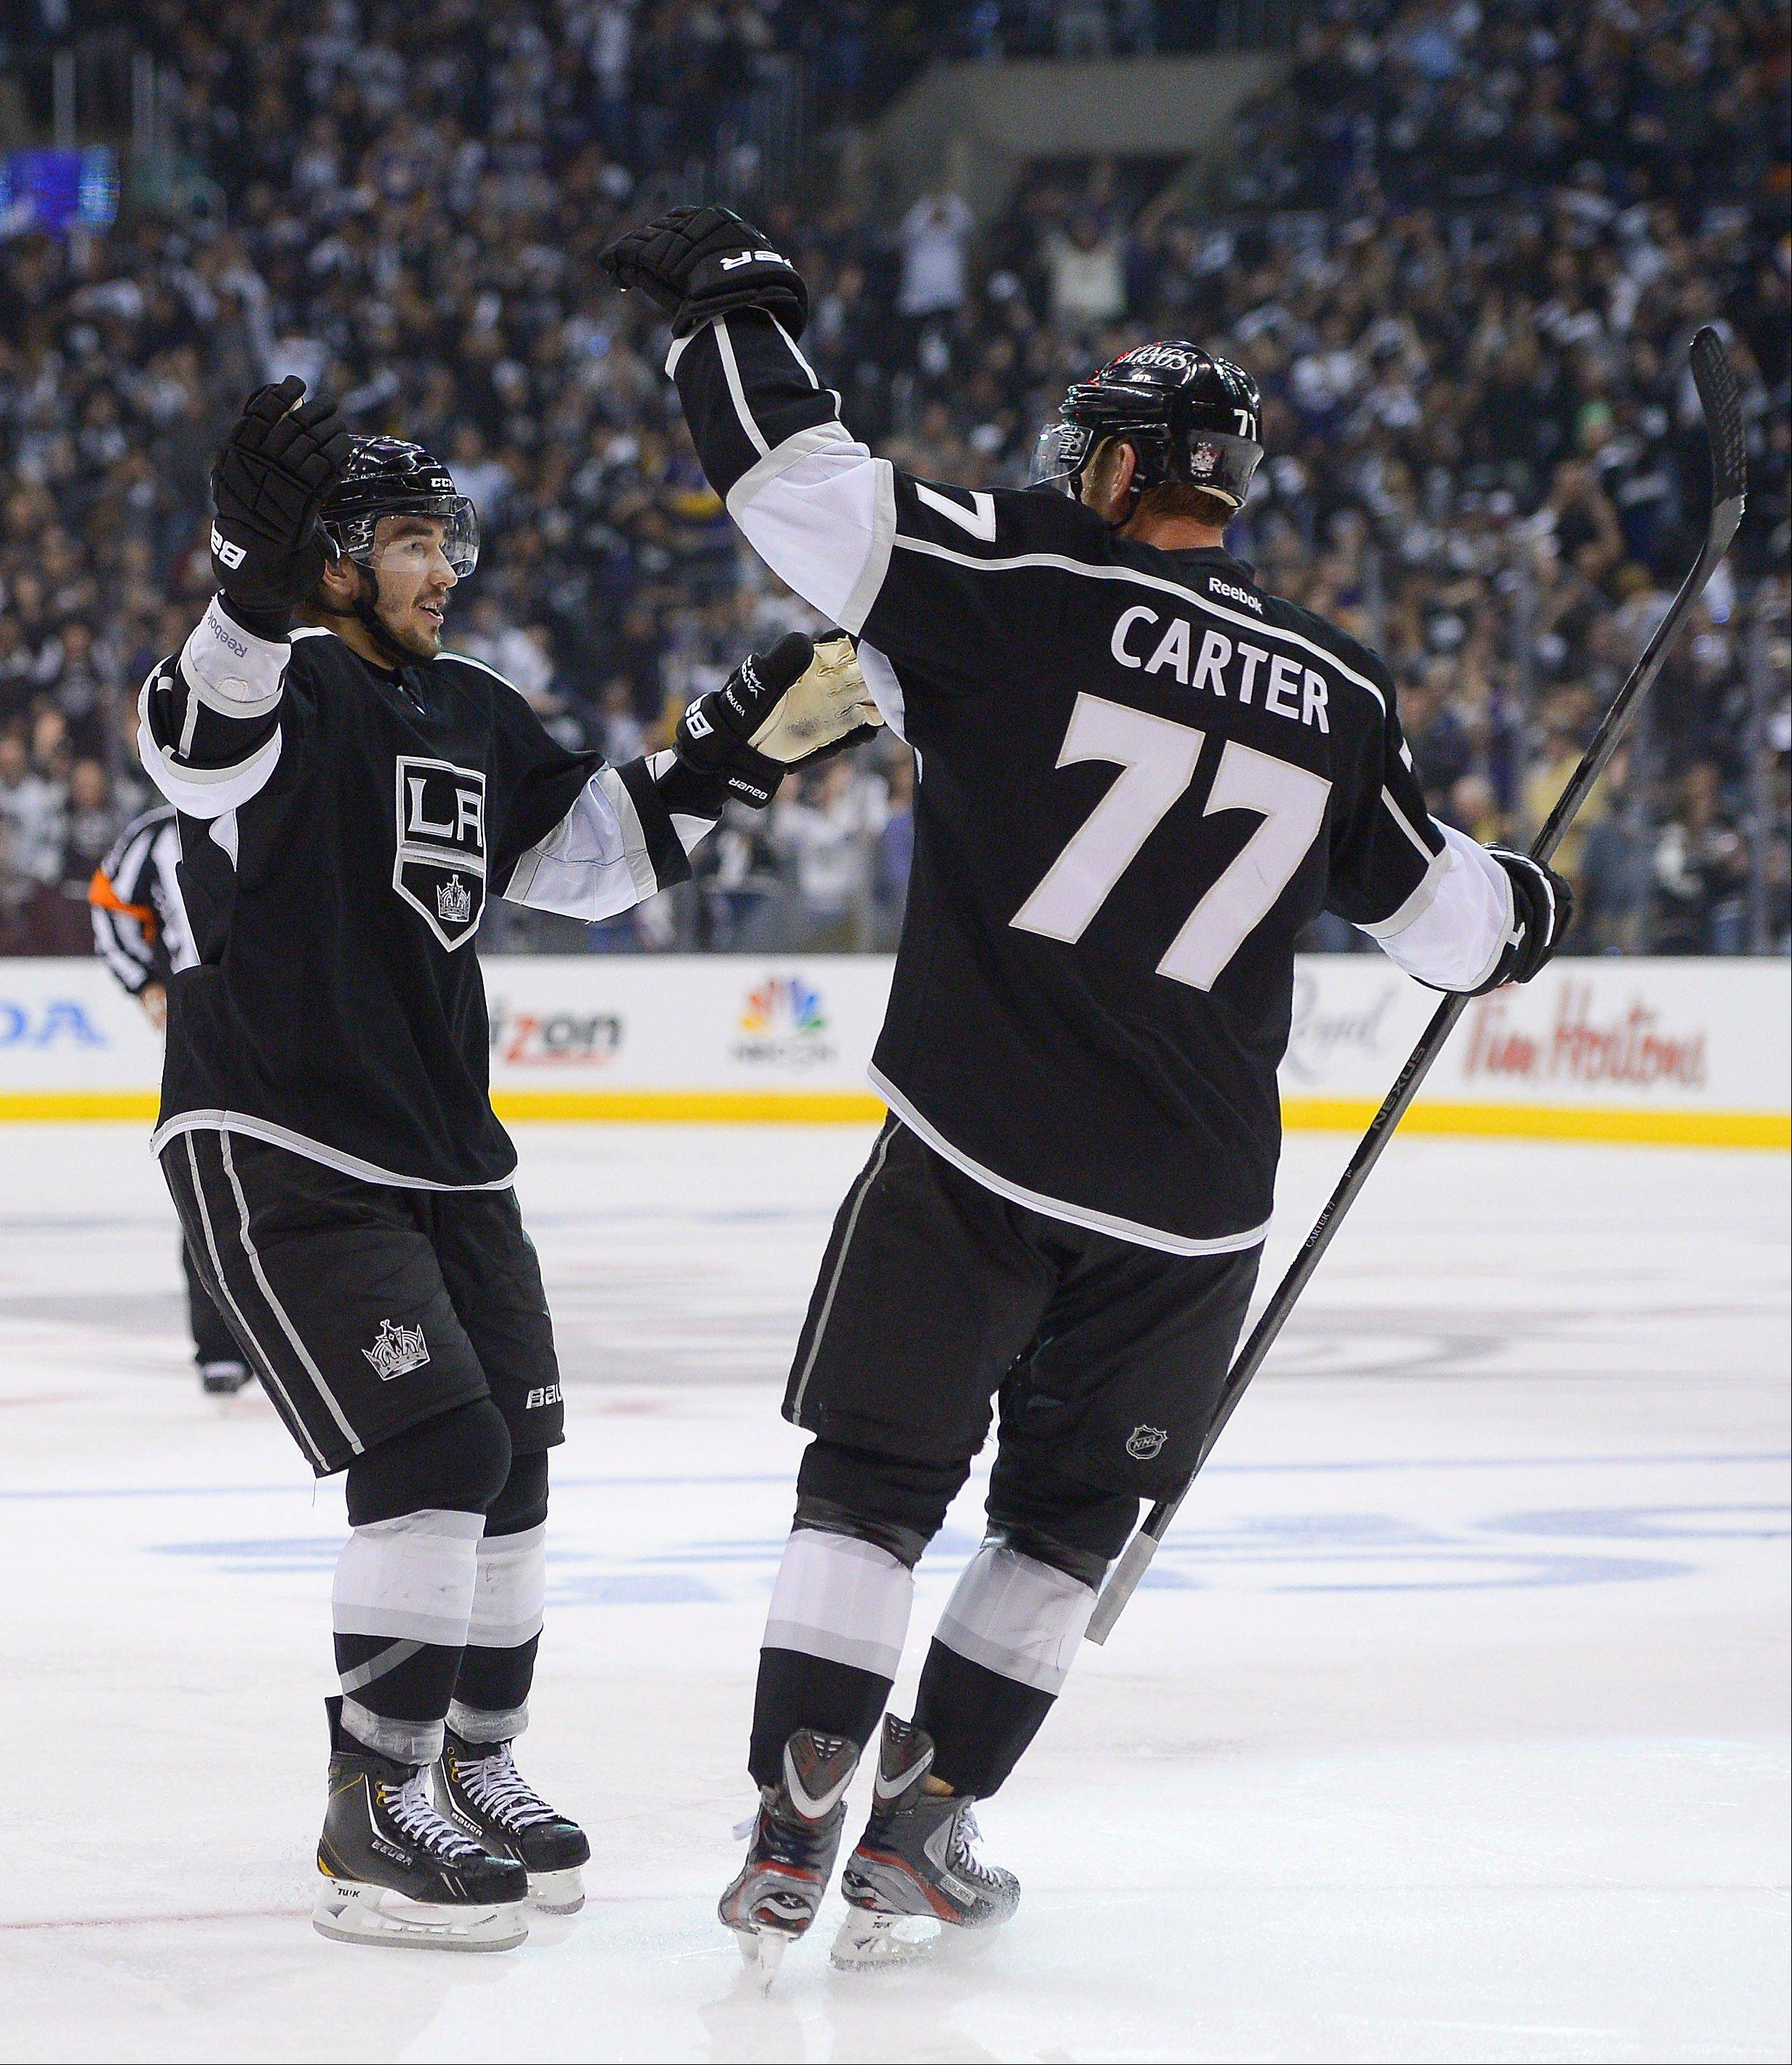 Los Angeles Kings defenseman Slava Voynov, left, celebrates with center Jeff Carter (77) after scoring a goal against the Chicago Blackhawks during the second period in Game 3 of the NHL hockey Stanley Cup playoffs Western Conference finals, Tuesday, June 4, 2013, in Los Angeles. (AP Photo/Mark J. Terrill)